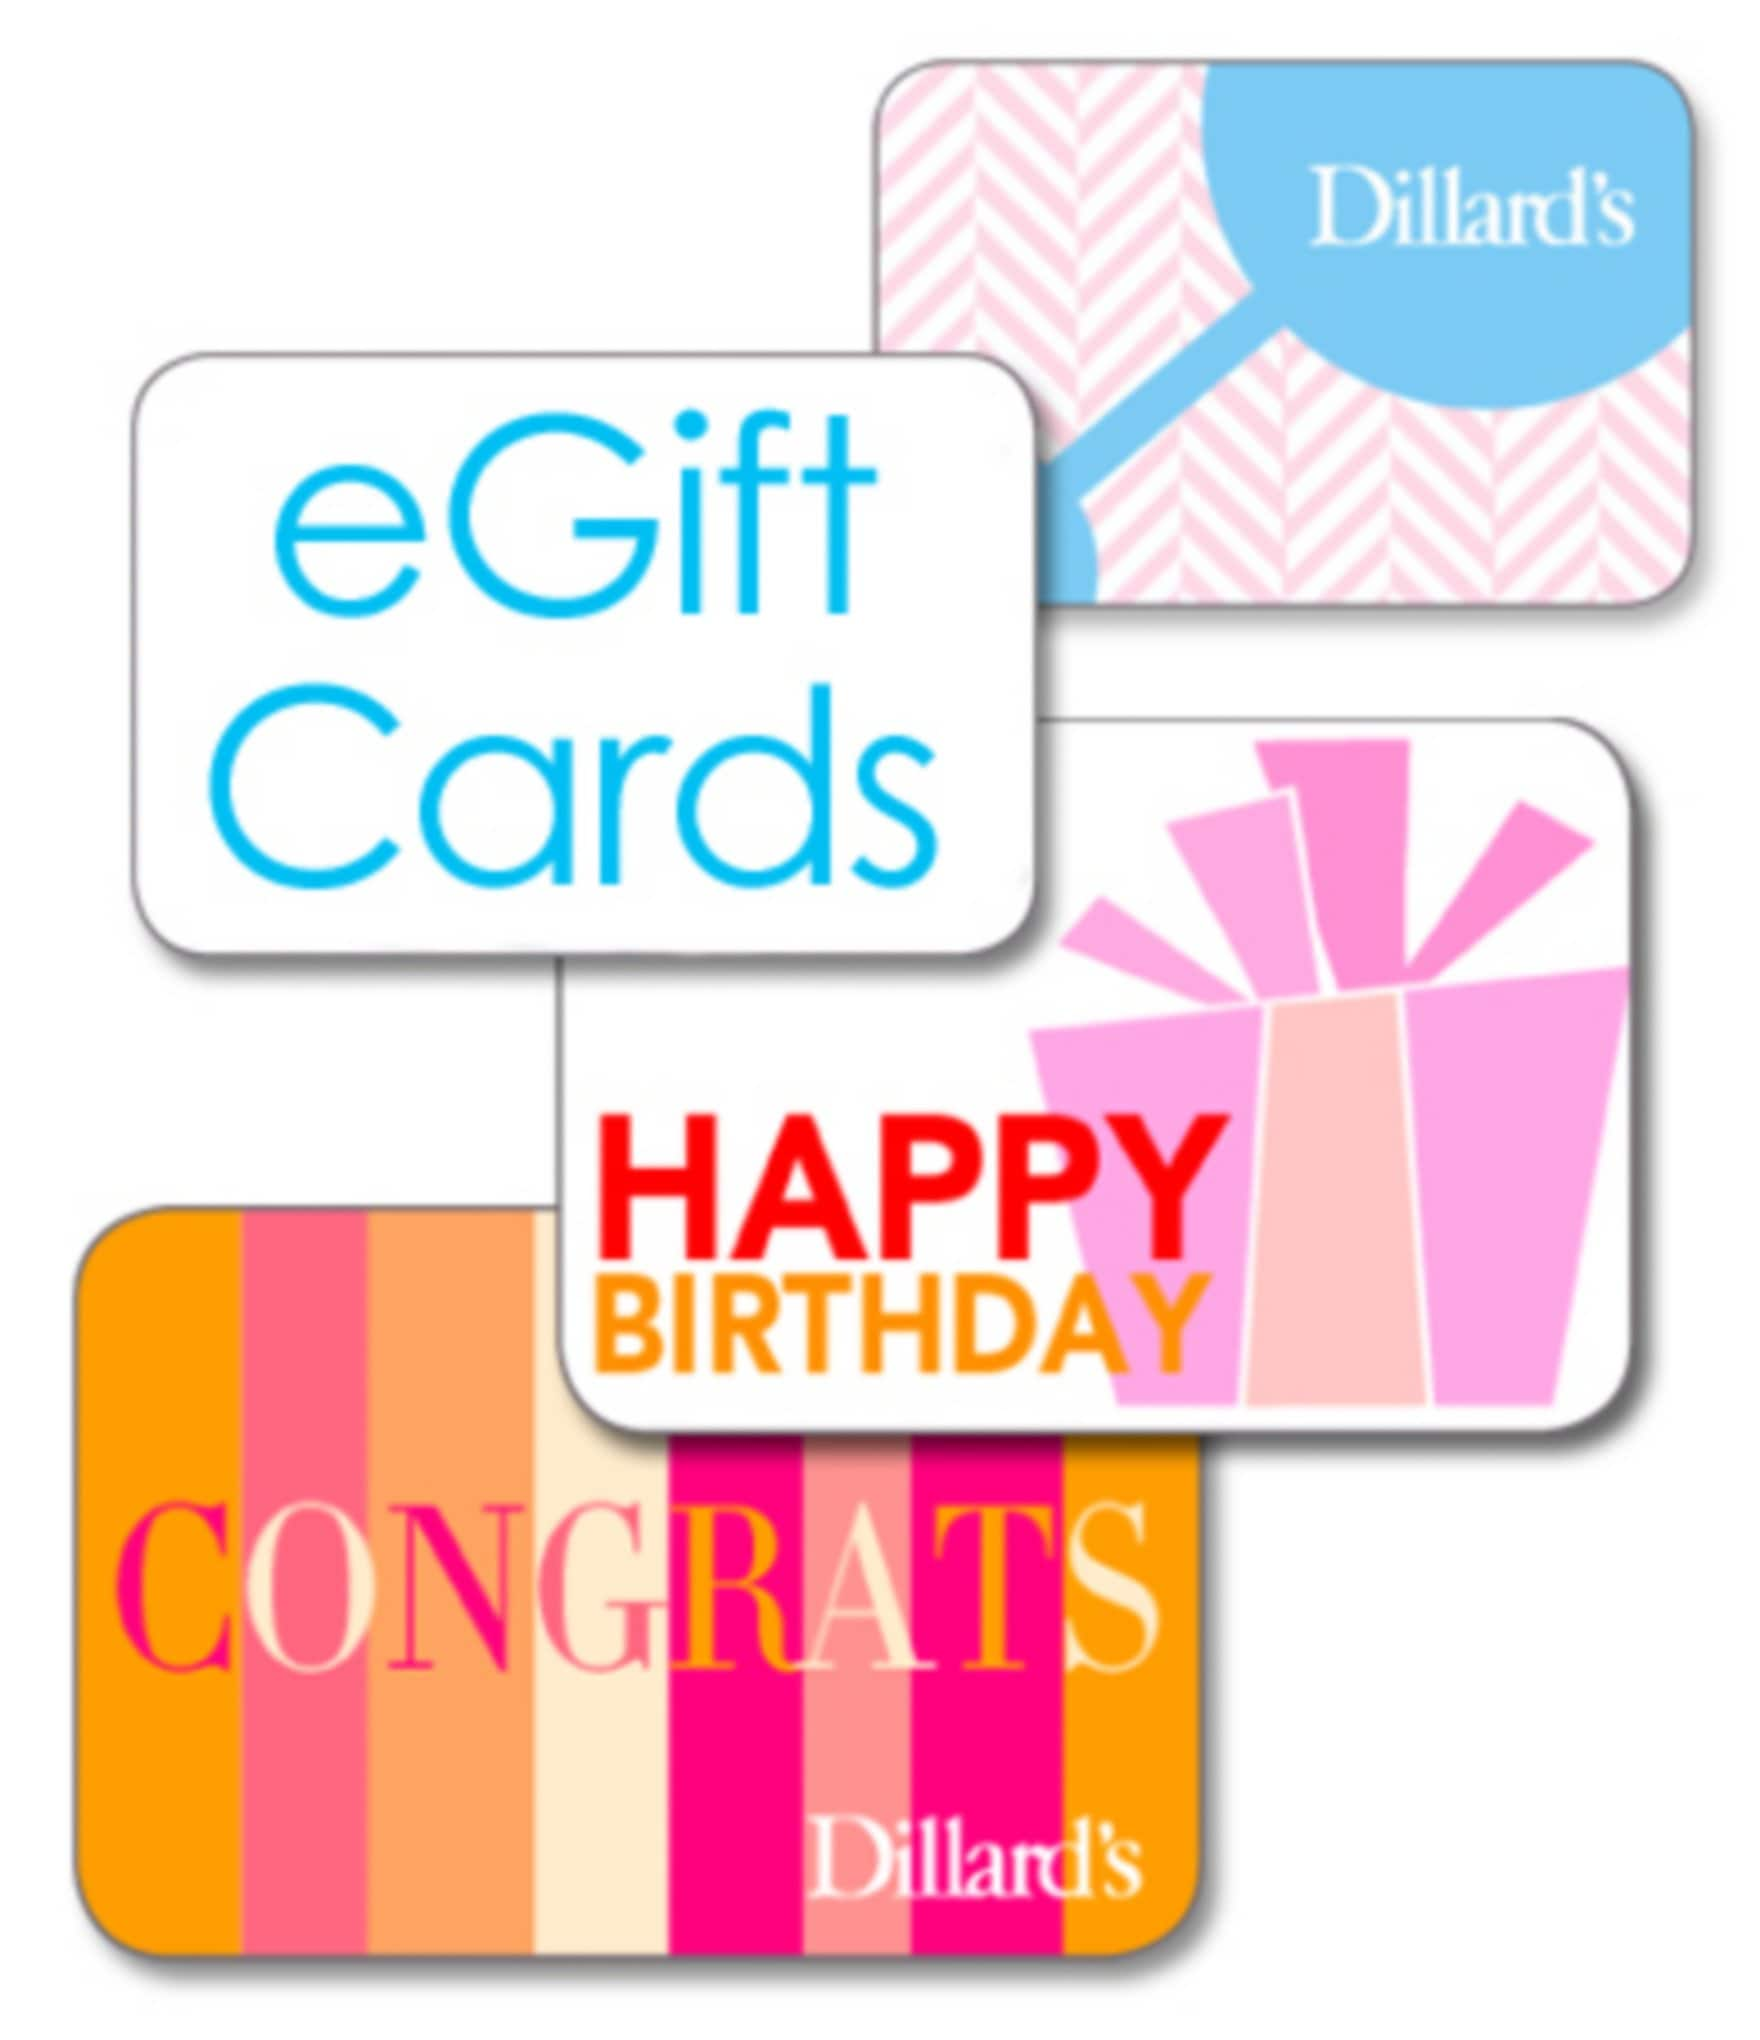 Dillards EGift Card